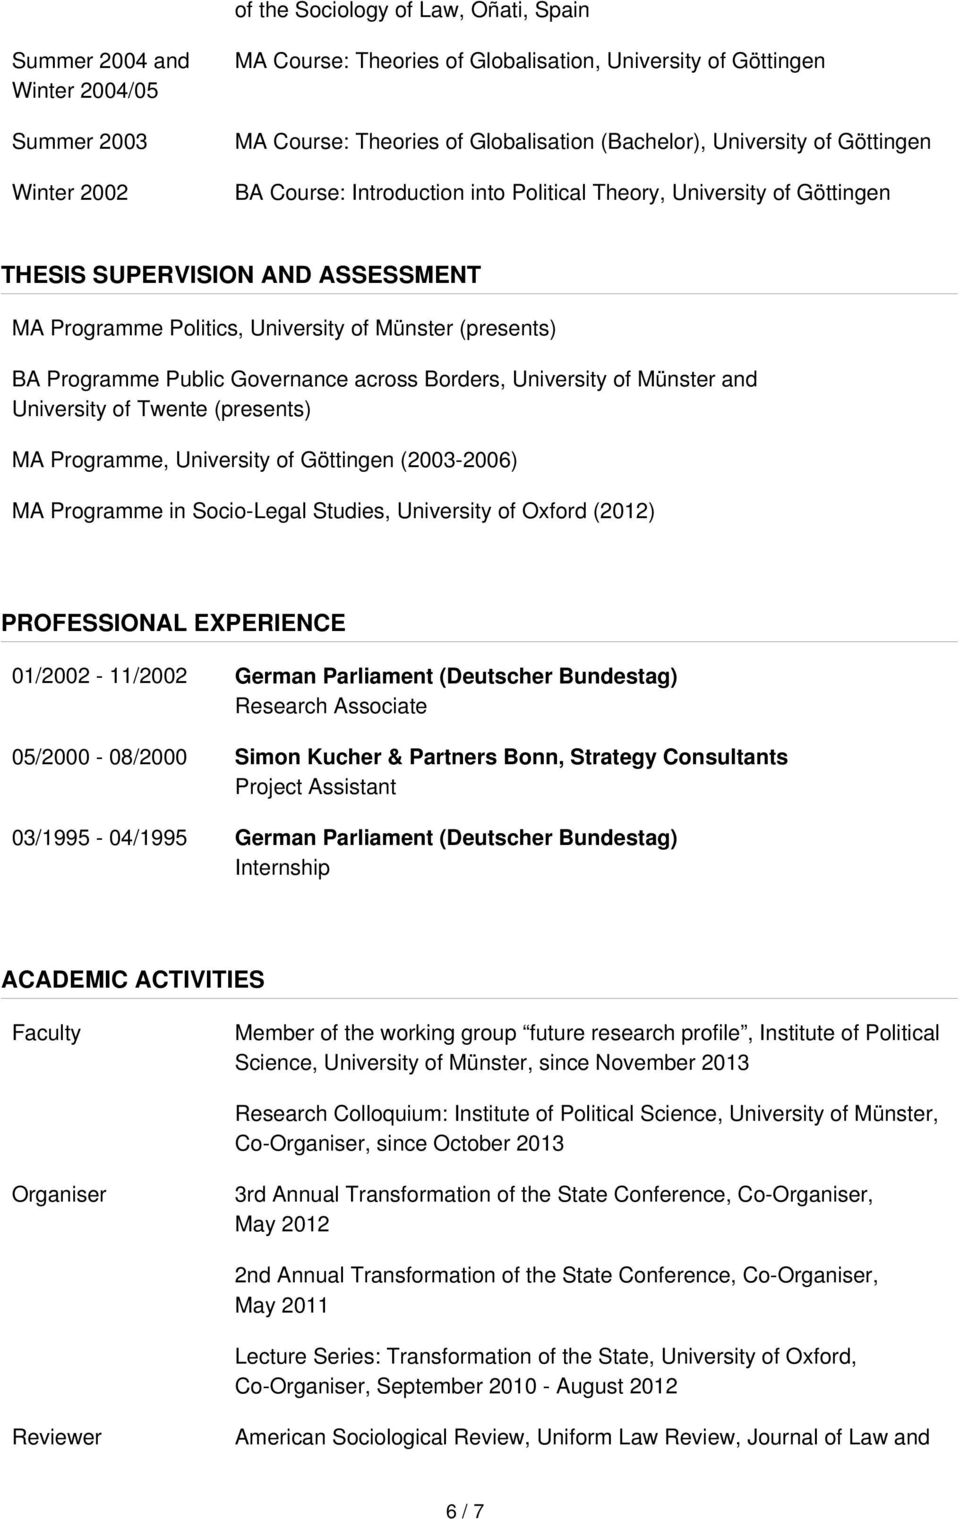 Programme Public Governance across Borders, University of Münster and University of Twente (presents) MA Programme, University of Göttingen (2003-2006) MA Programme in Socio-Legal Studies, University